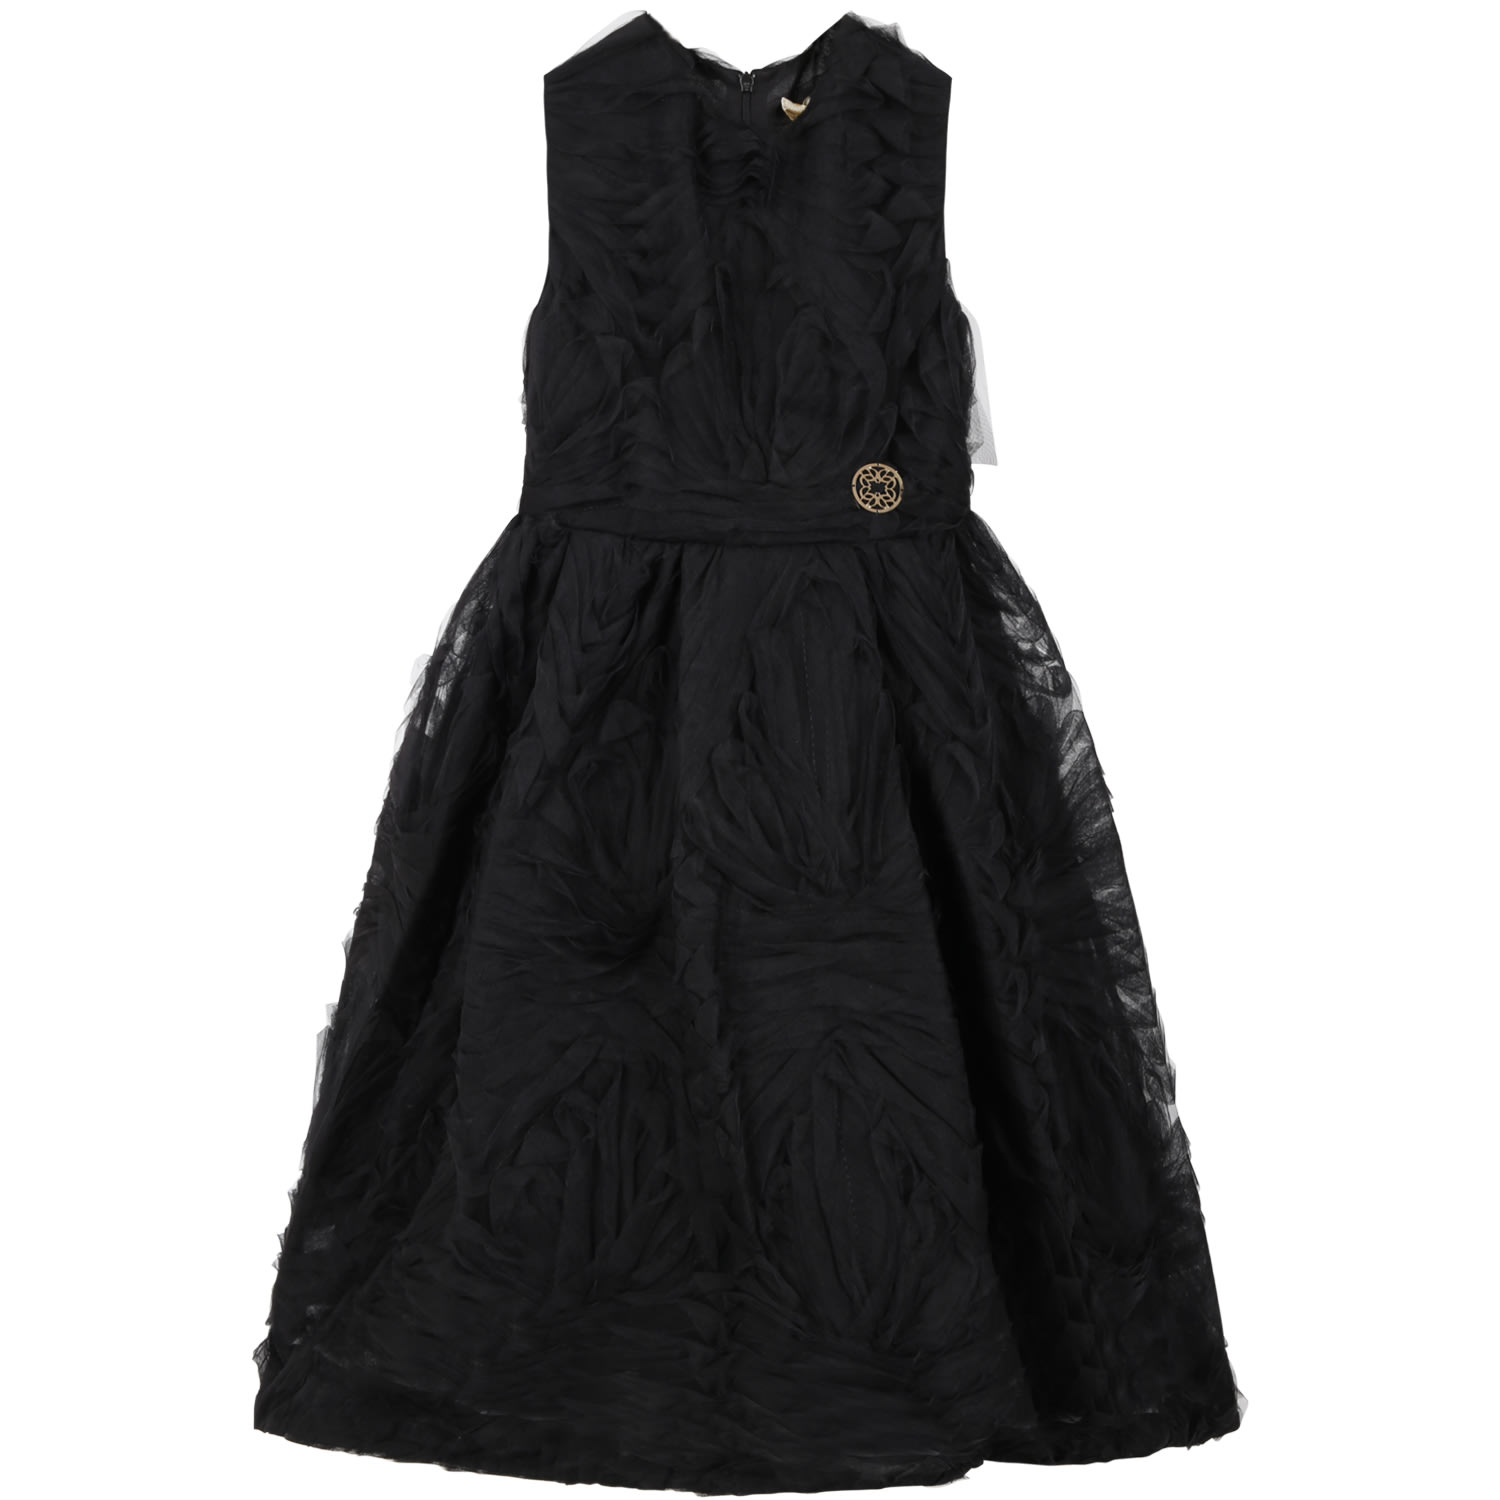 Buy Elie Saab Black Dress For Girl With Iconic Logo online, shop Elie Saab with free shipping